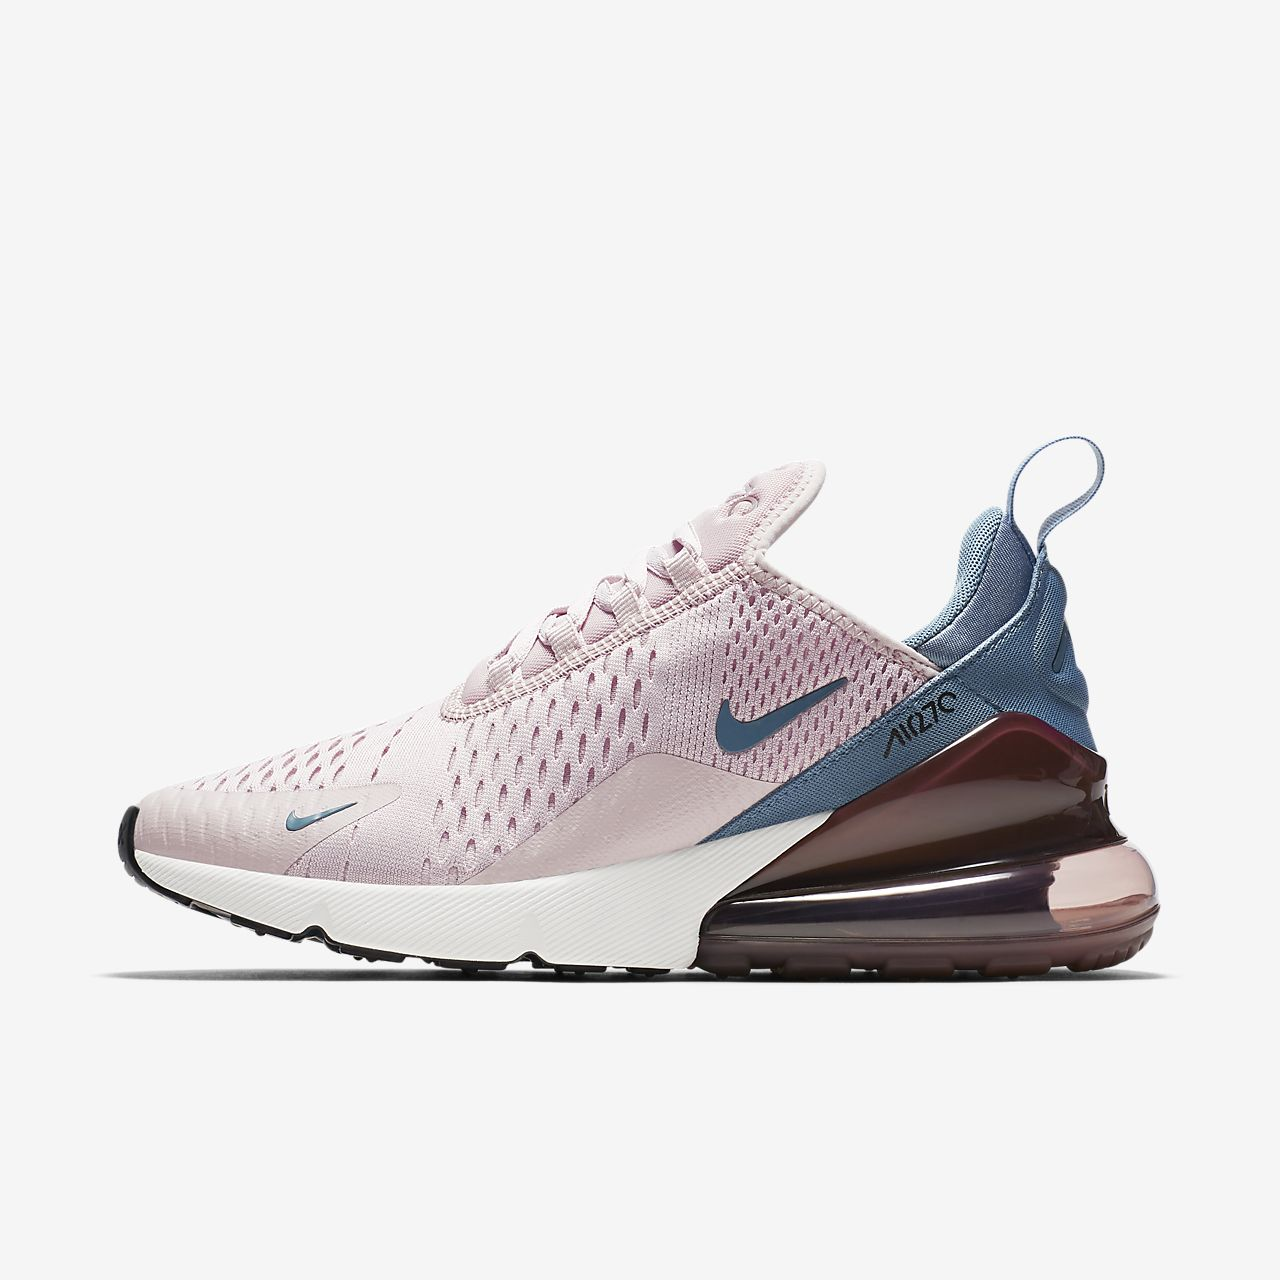 437b4aa7c Nike Air Max 270 Women s Shoe. Nike.com